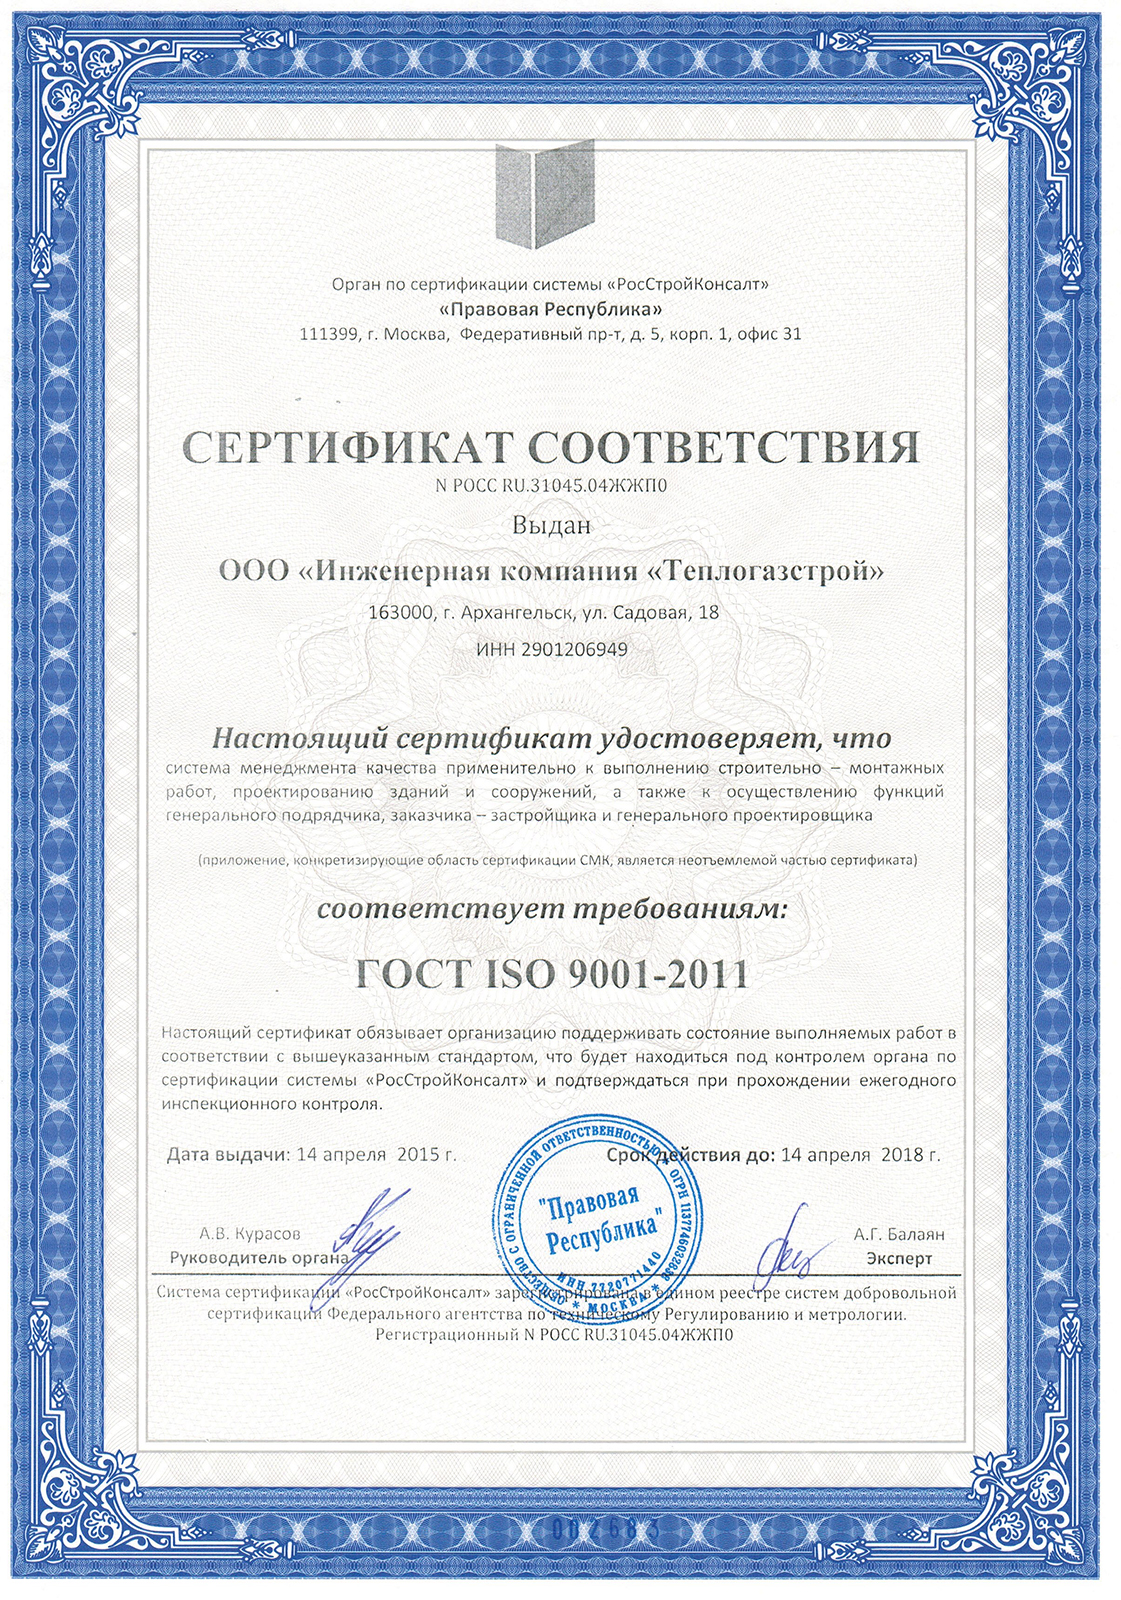 Certificate of compliance ISO 9001-2011 with respect to the implementation of construction and installation works, the design of buildings and structures, as well as the functions of the general contractor, the customer-builder and the general designer